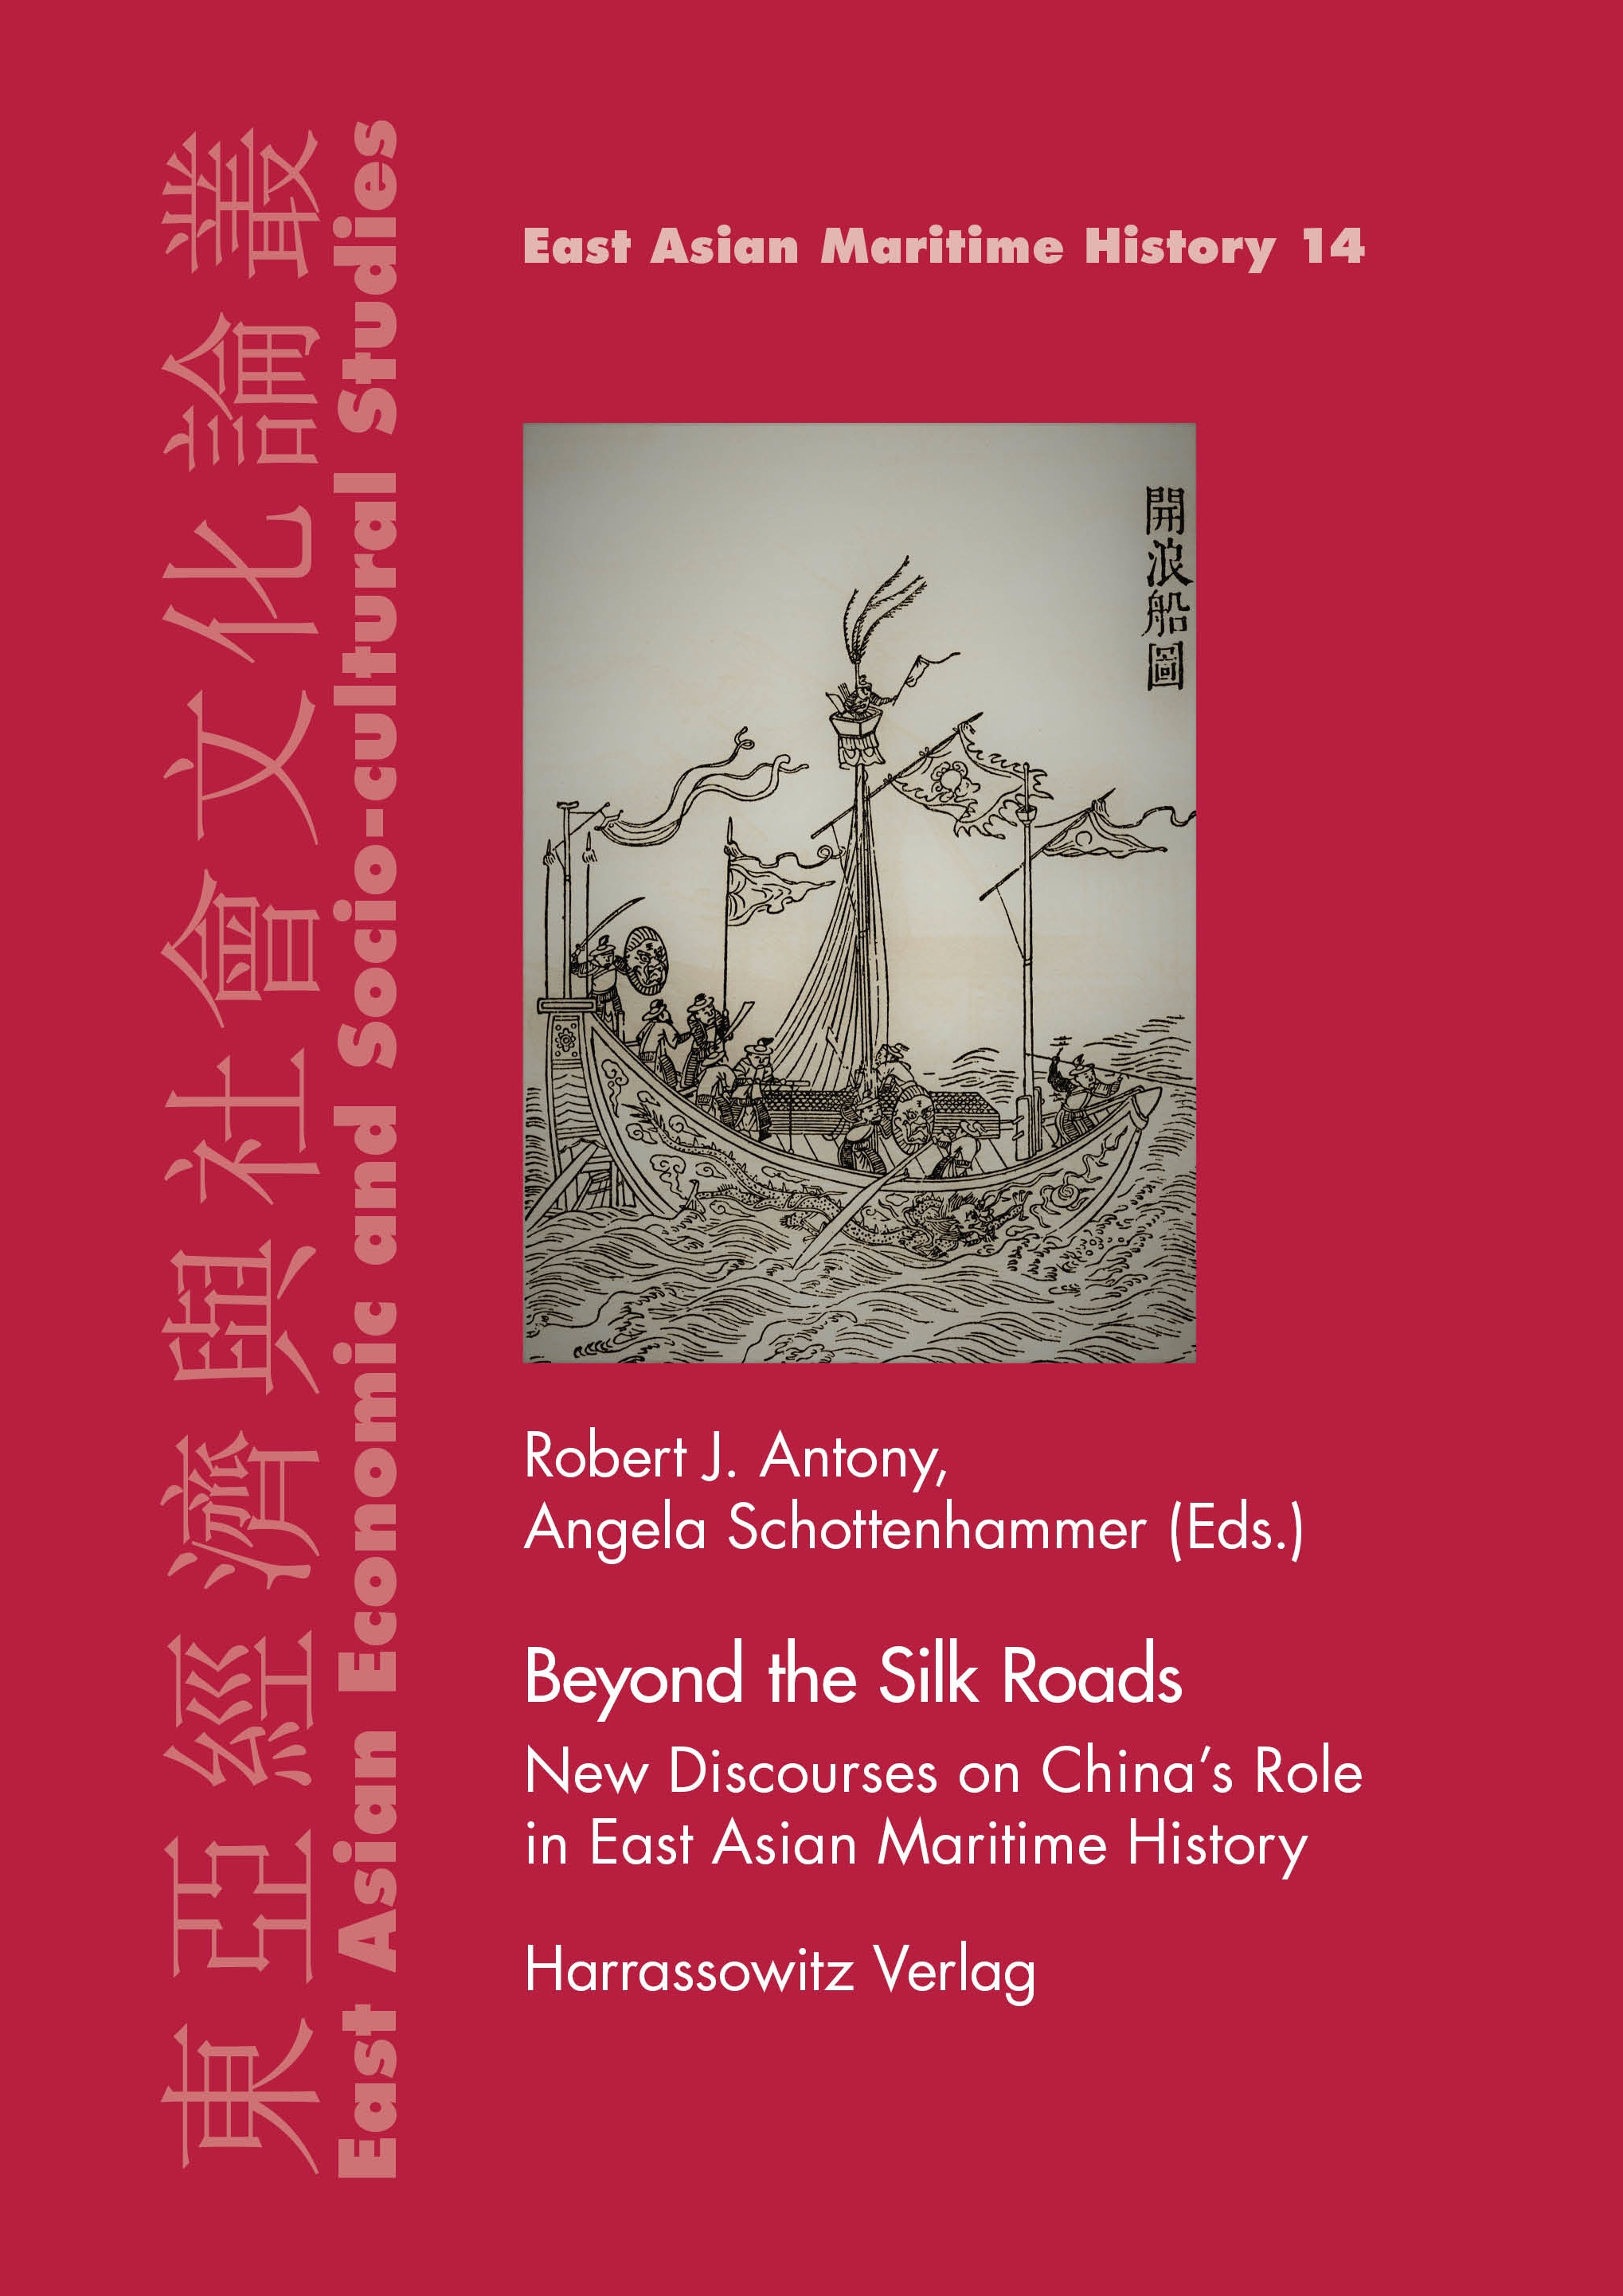 New Developments on China's Role in East Asian Maritime History